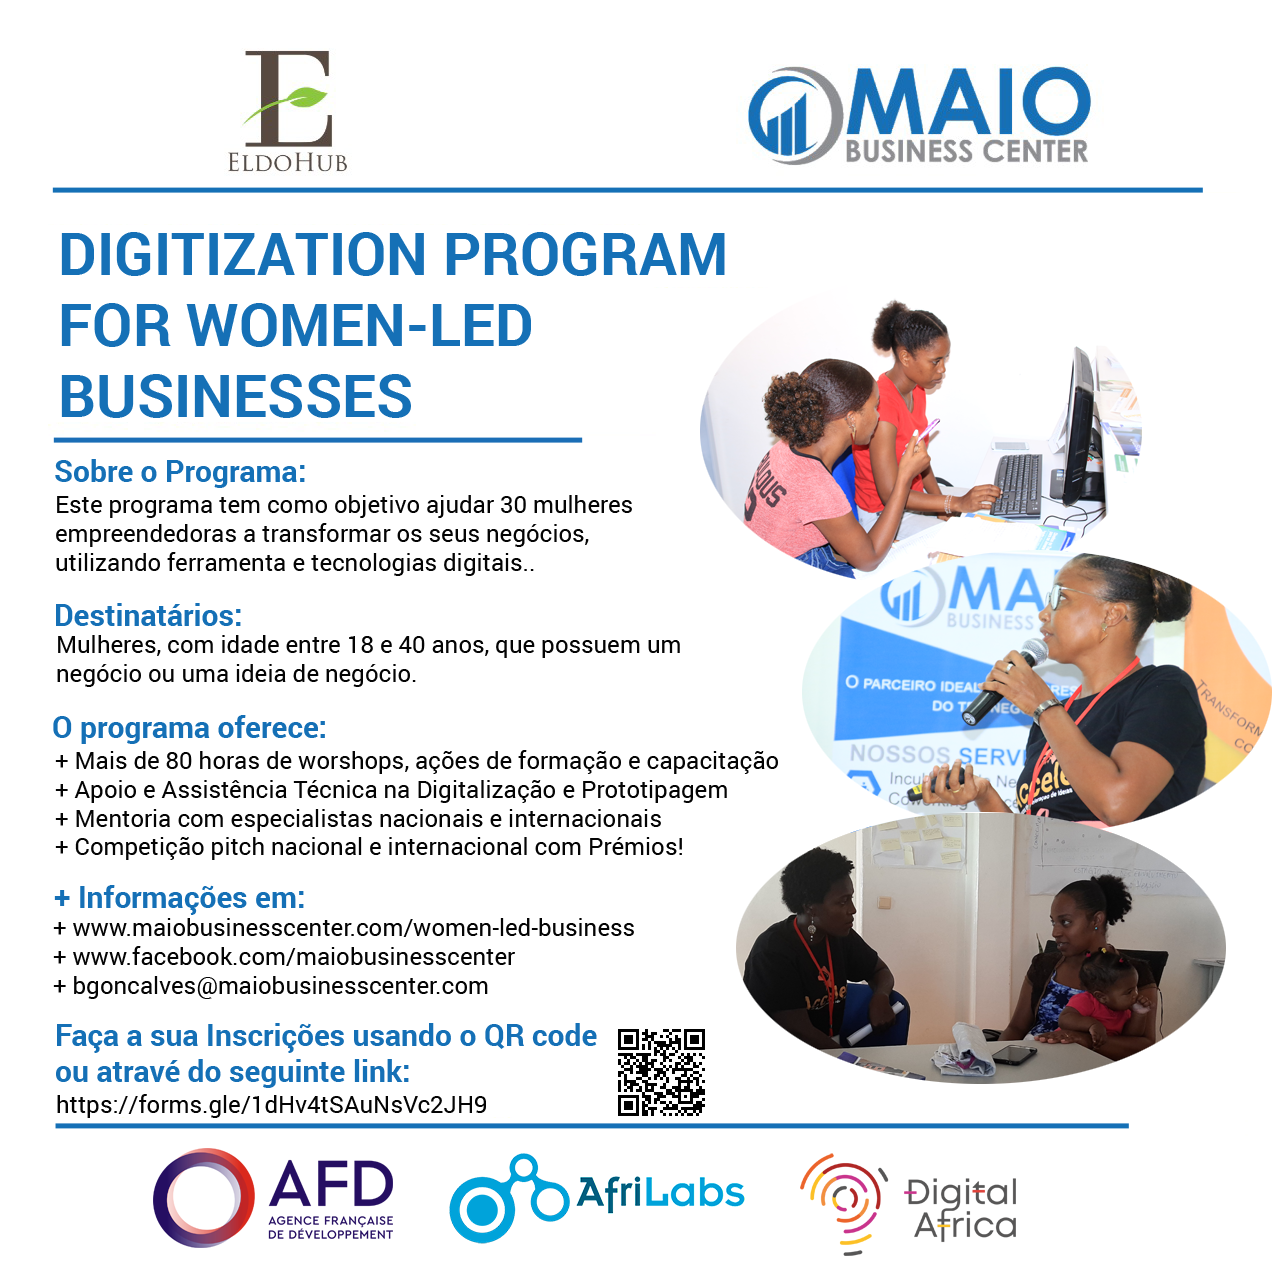 Digitization Program For Women-Led Businesses